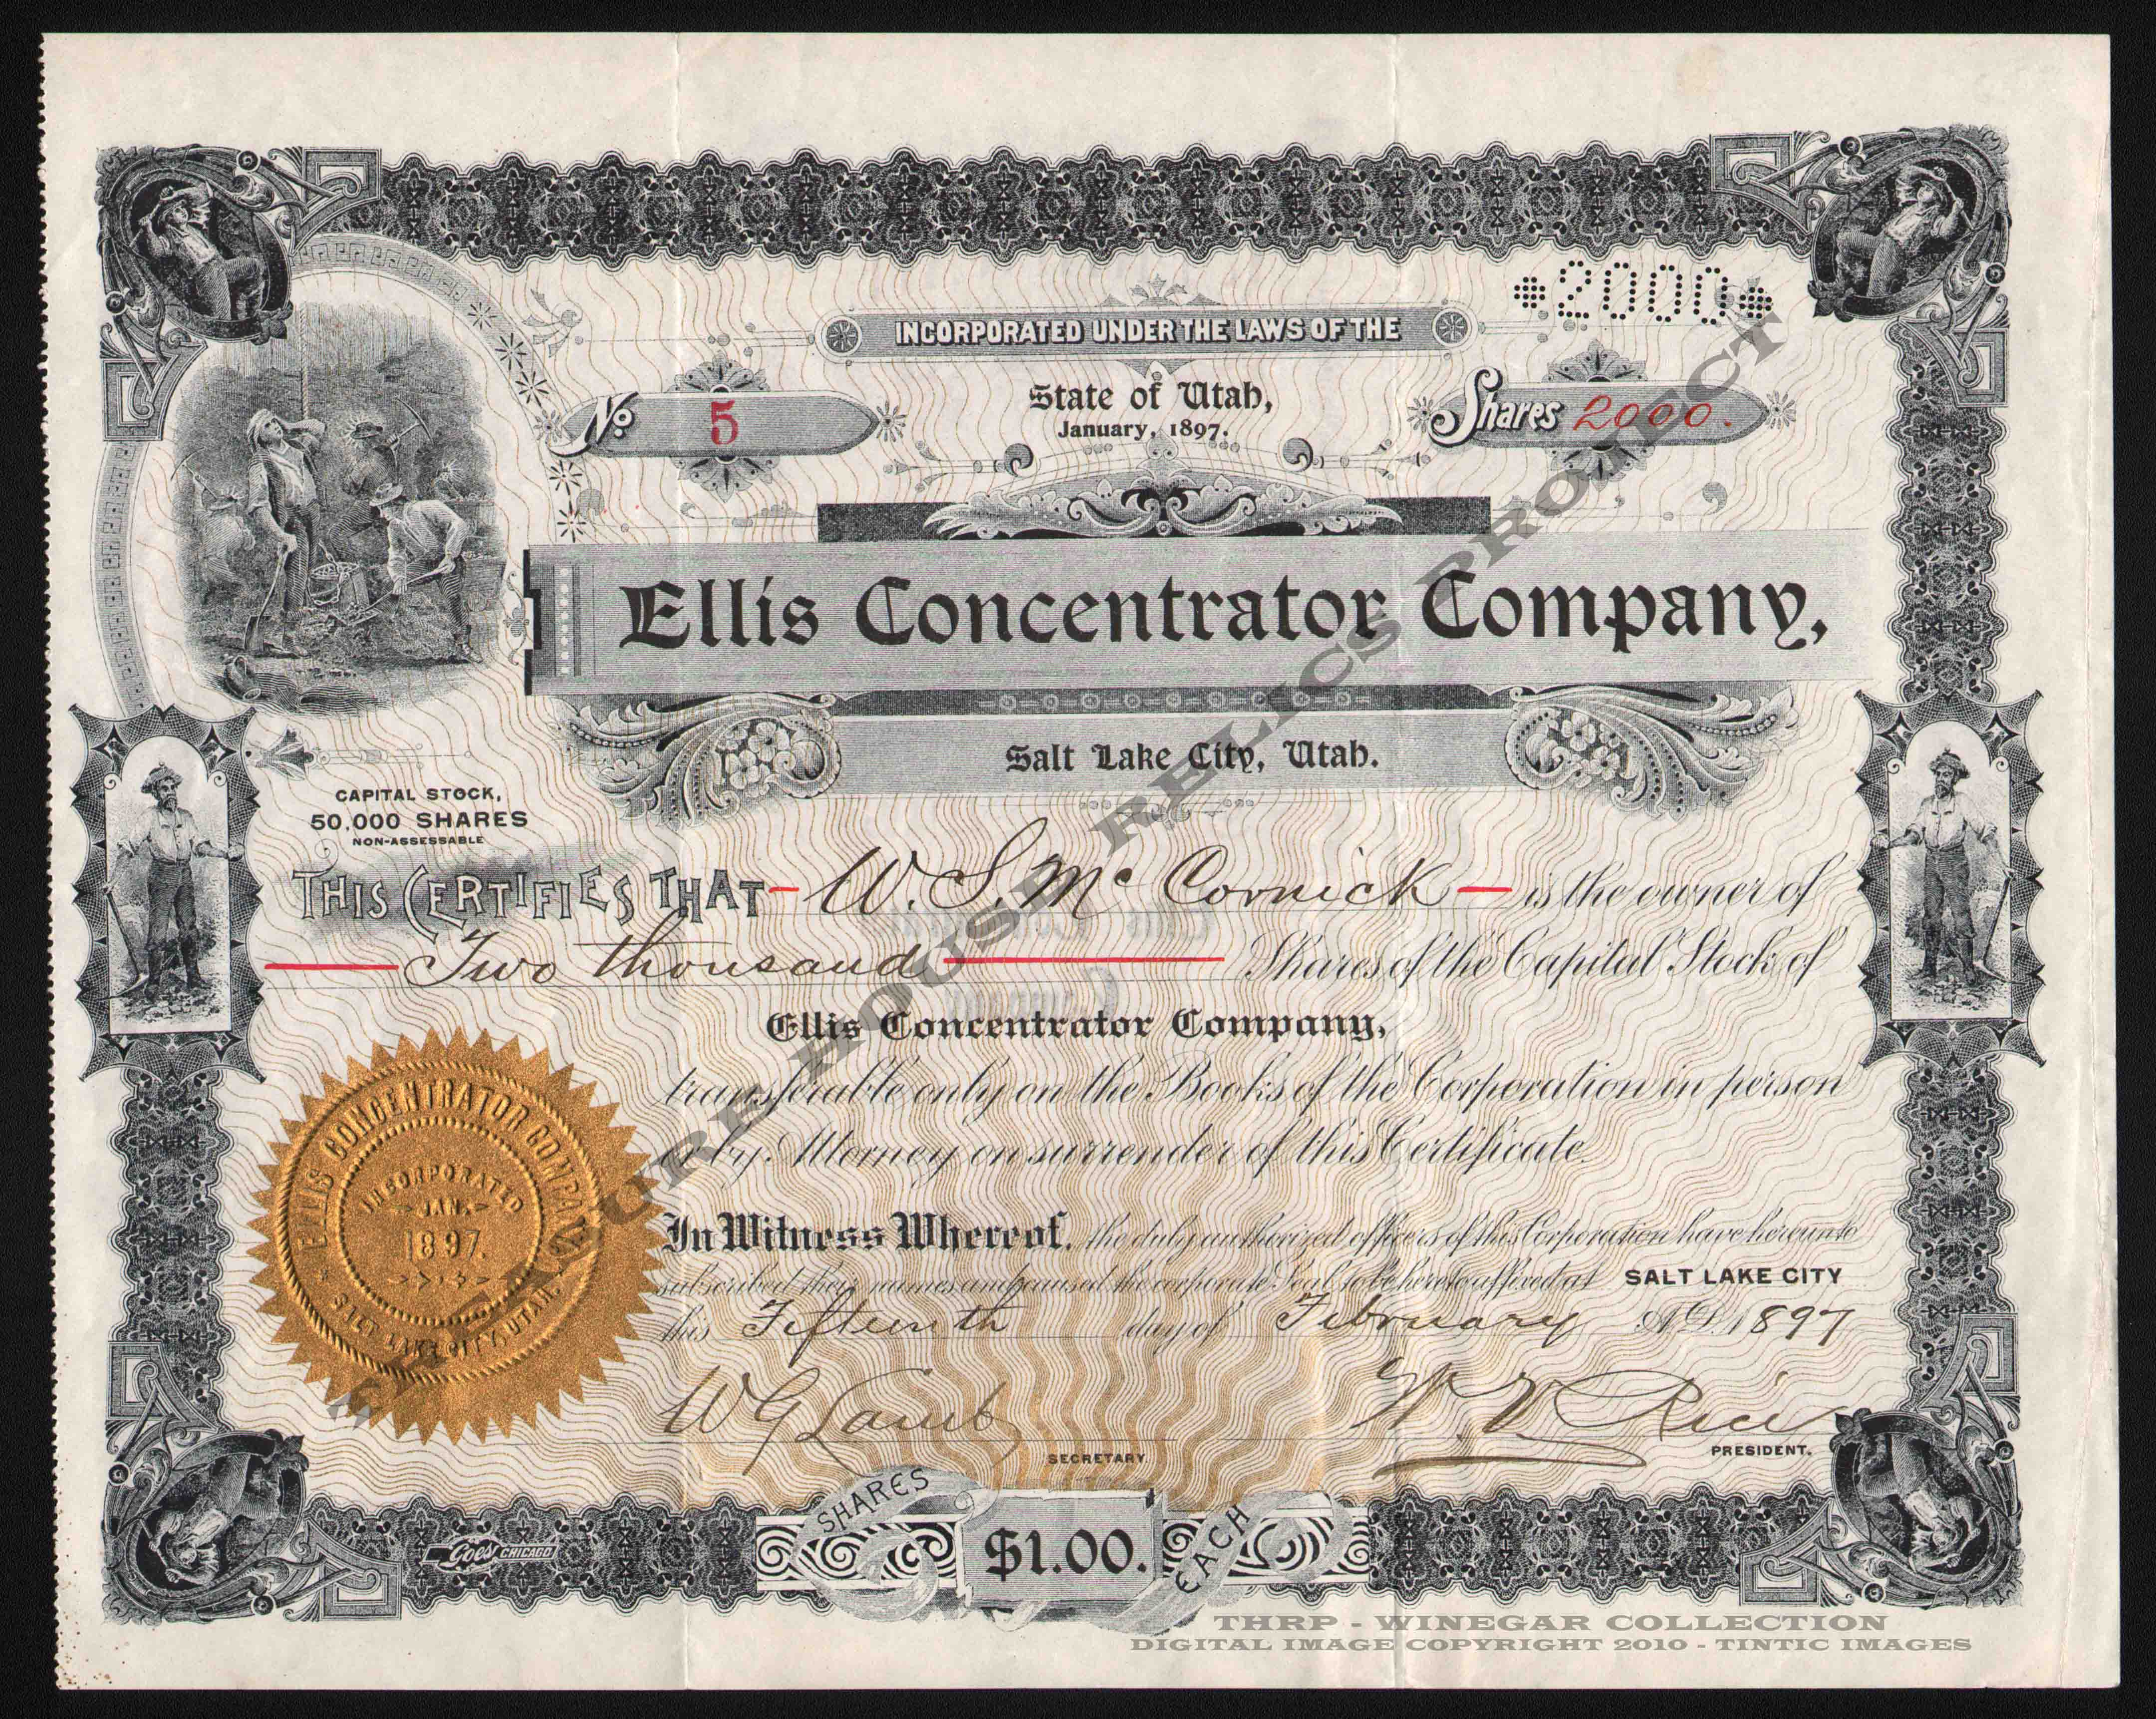 ELLIS_CONCENTRATOR_COMPANY_5_400_Inv_8696_EMBOSS.jpg